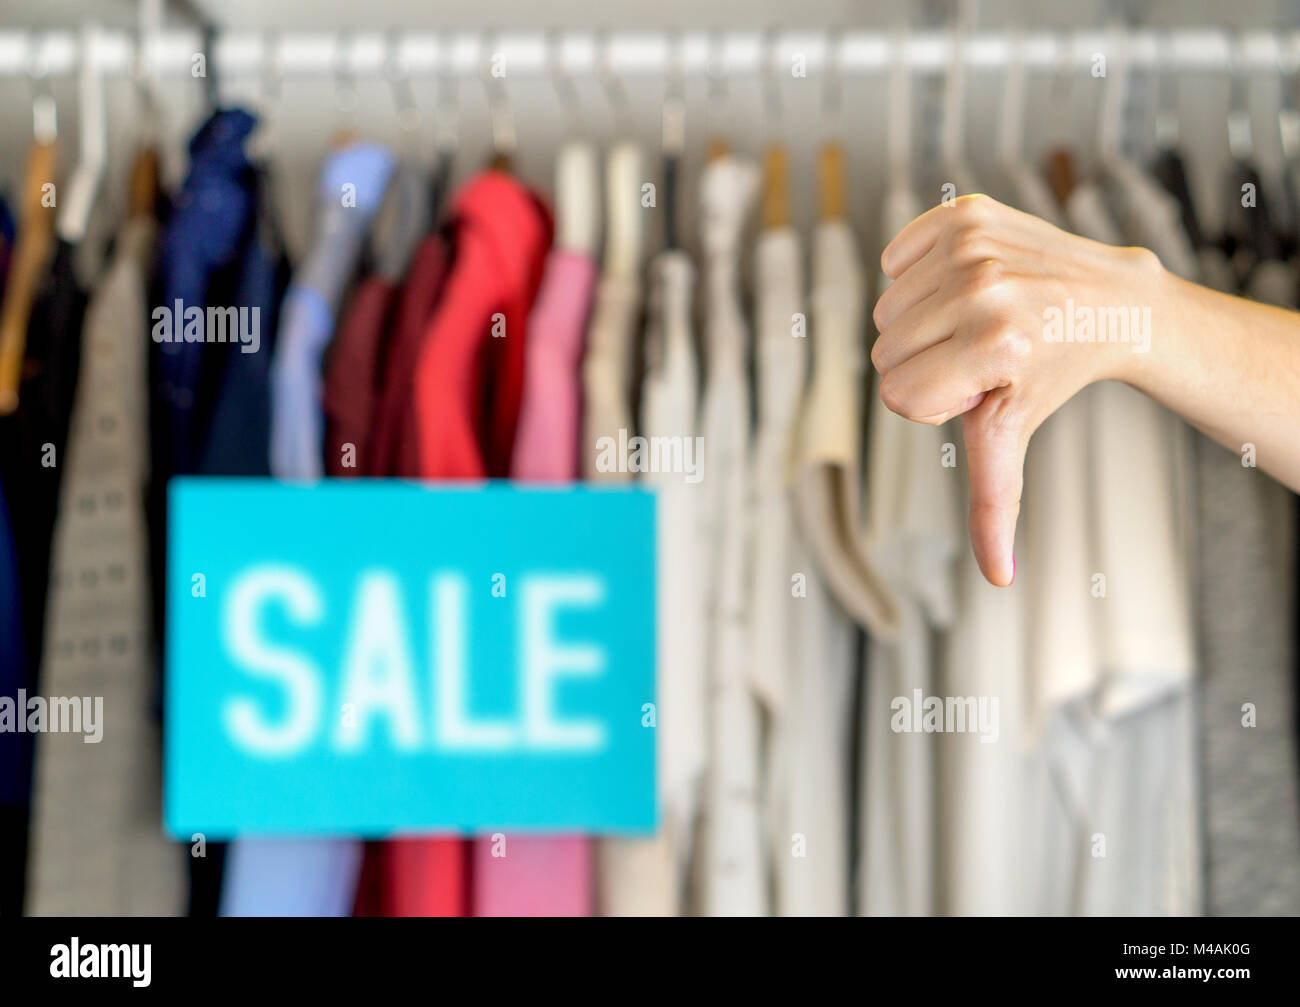 Unhappy and dissatisfied customer giving thumbs down in a clothing store for bad service or product quality. - Stock Image